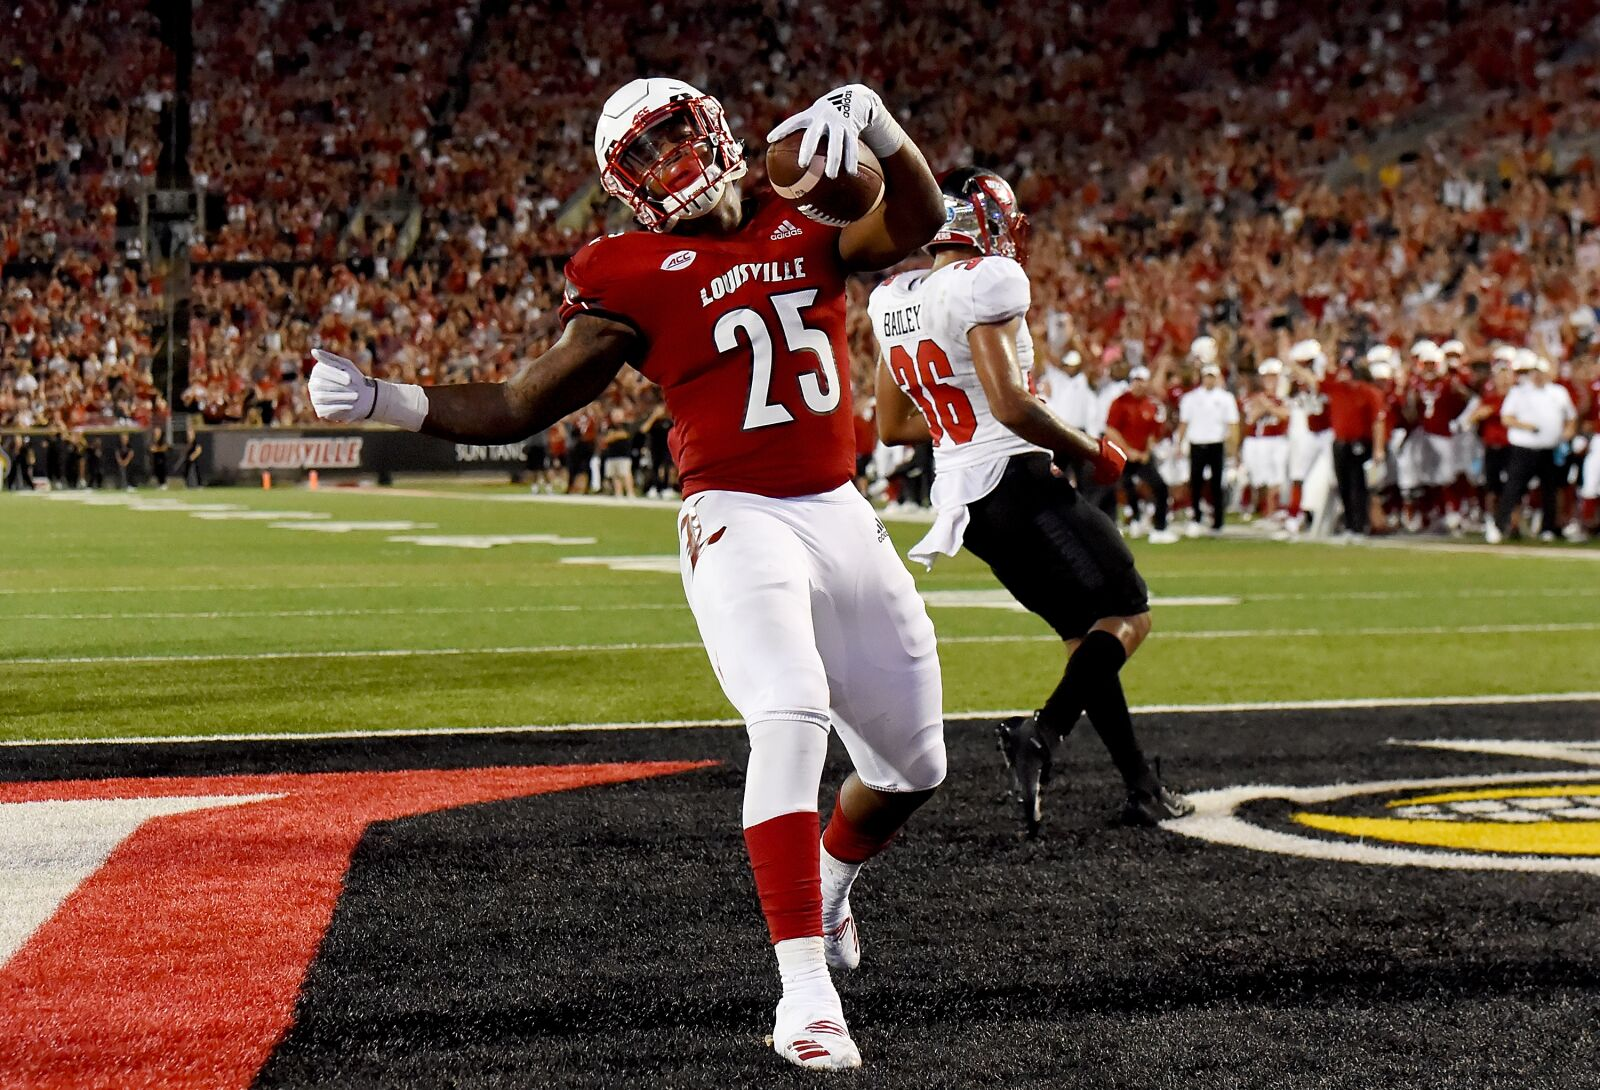 Louisville football: Cards will look to beat Tops convincingly this time